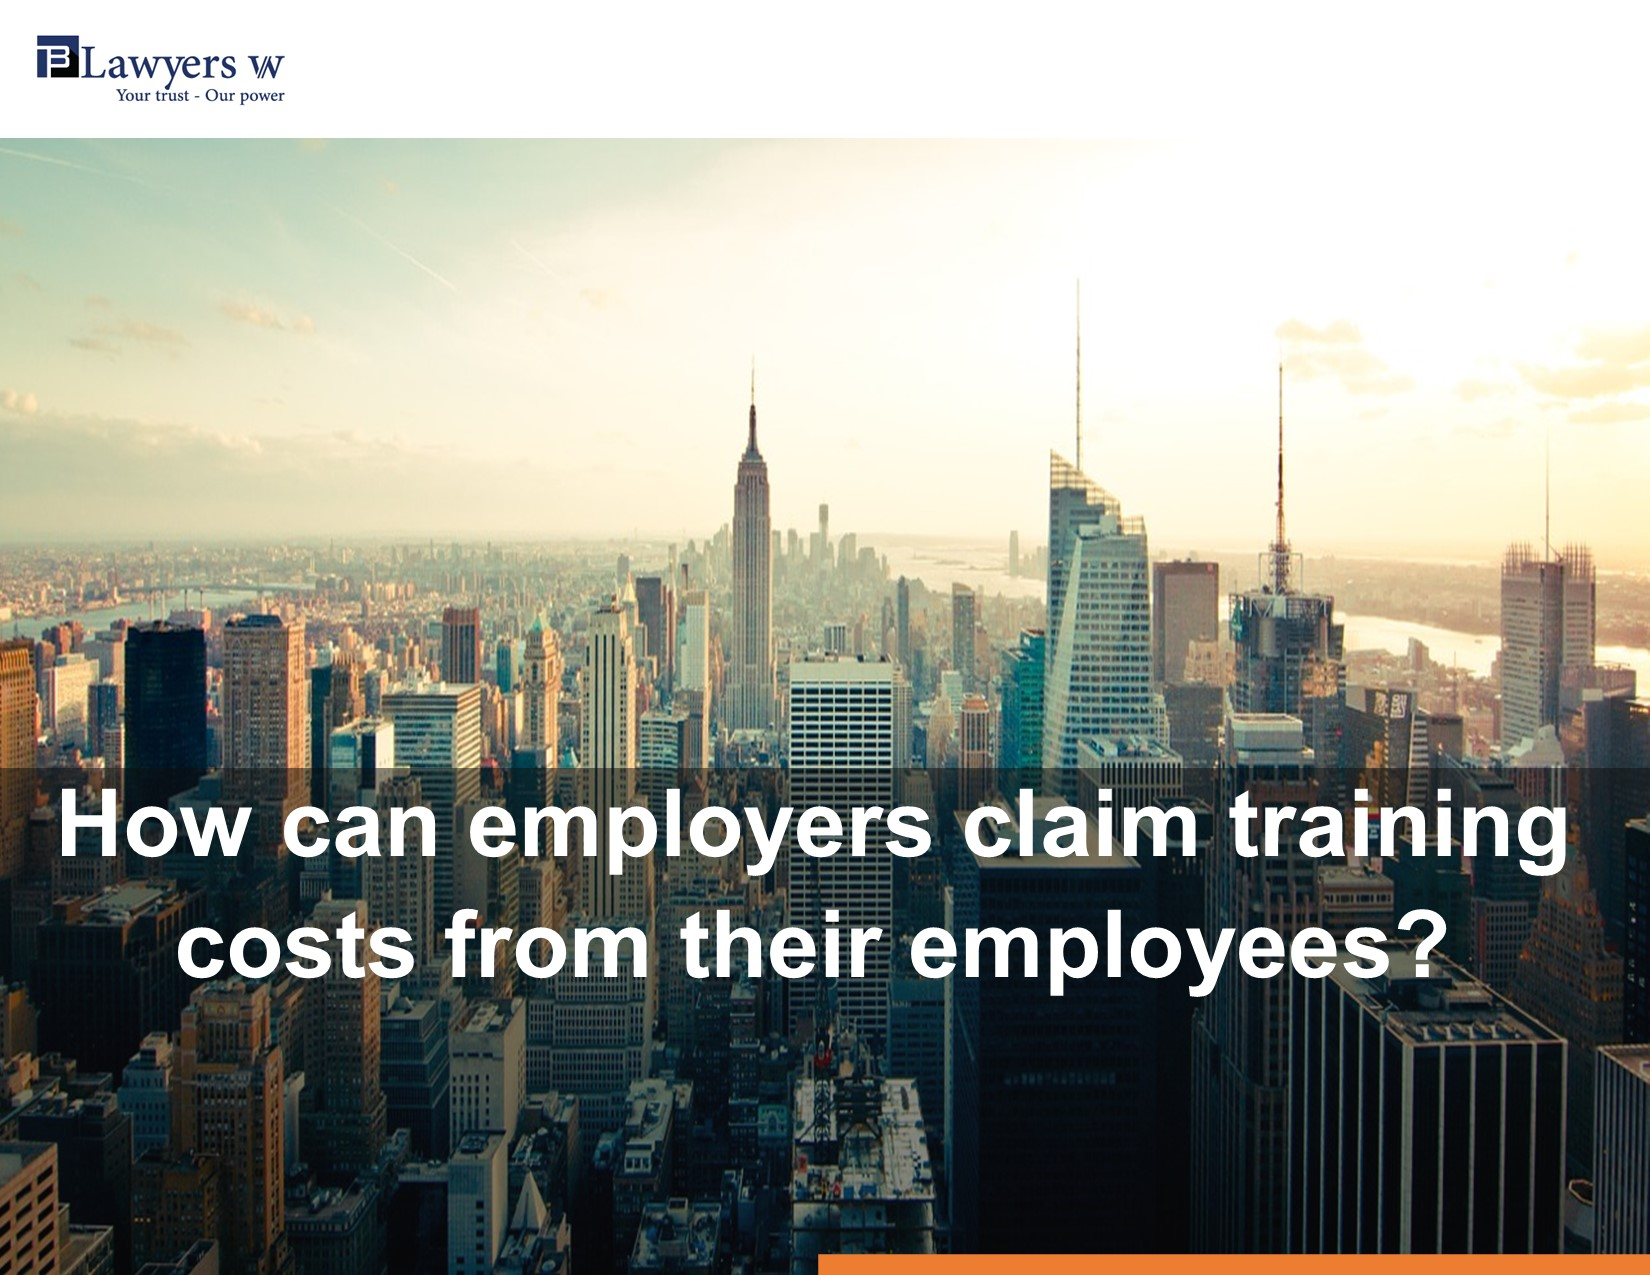 How can employers claim training costs from their employees?